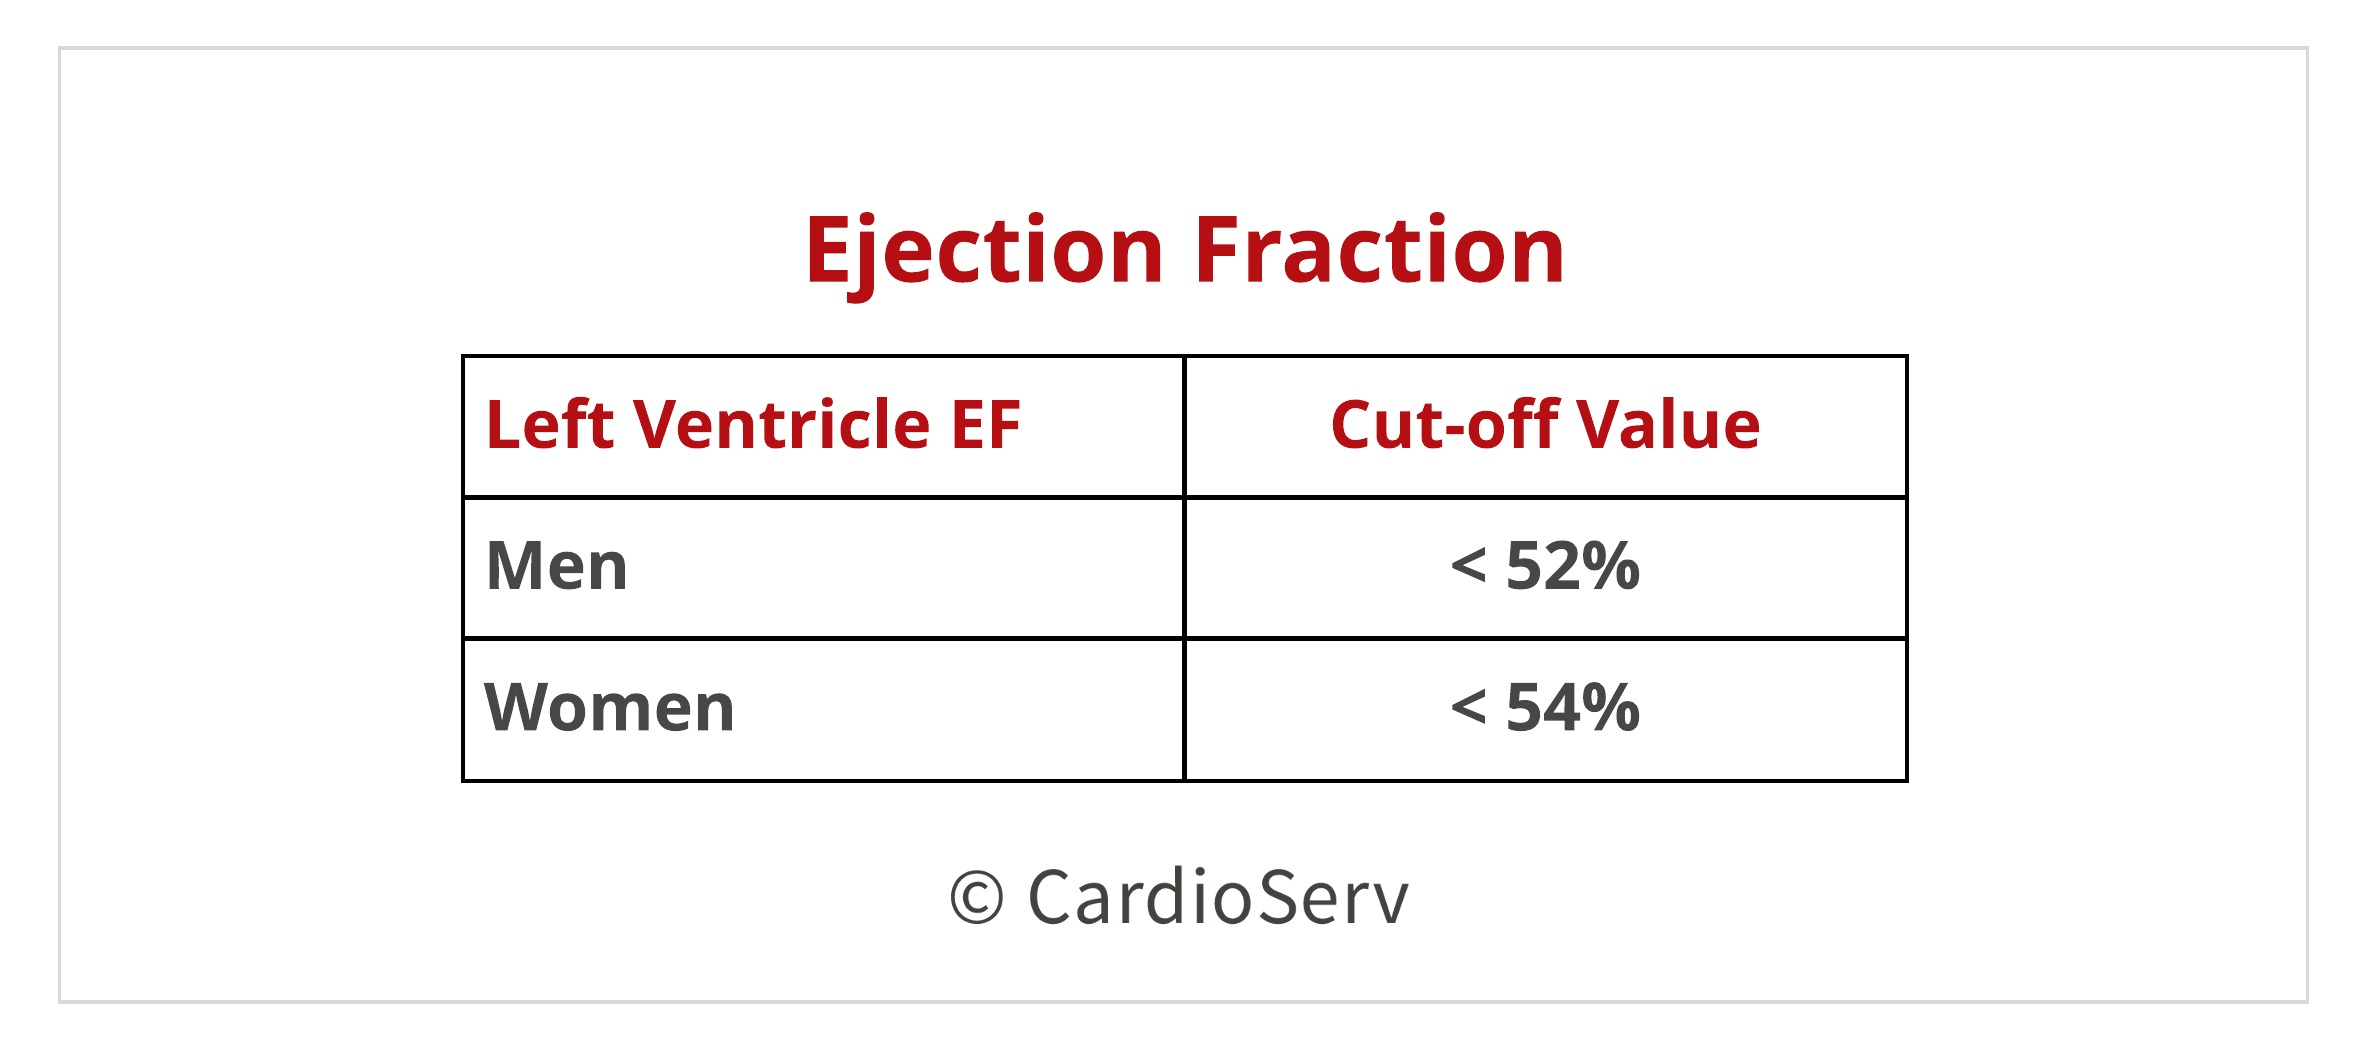 Diastolic Function Left Ventricle Ejection Fraction Values